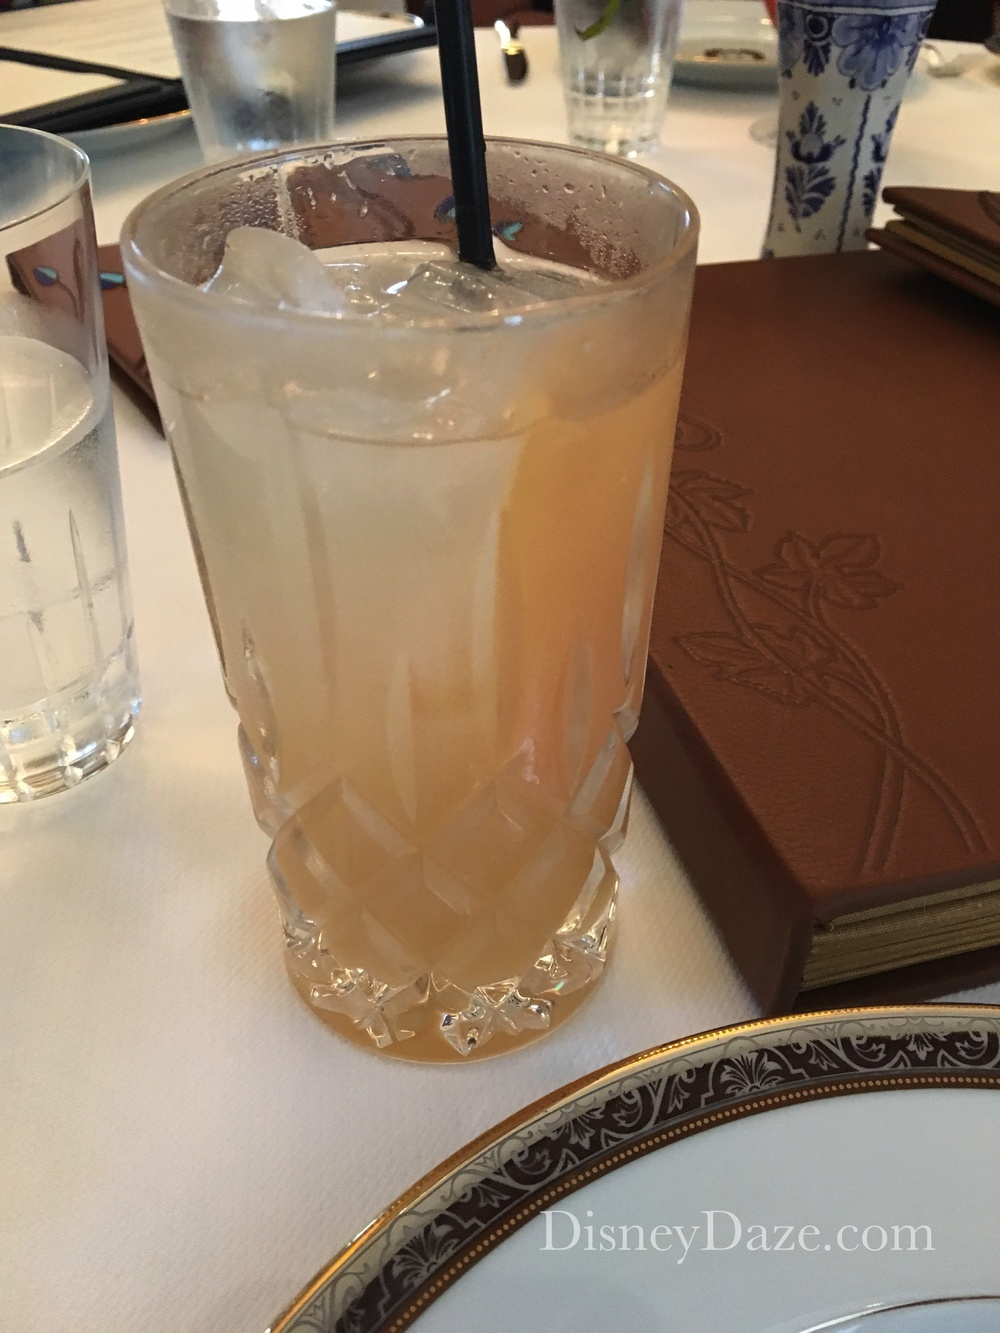 Signature Club 33 Beverage - The Ruby